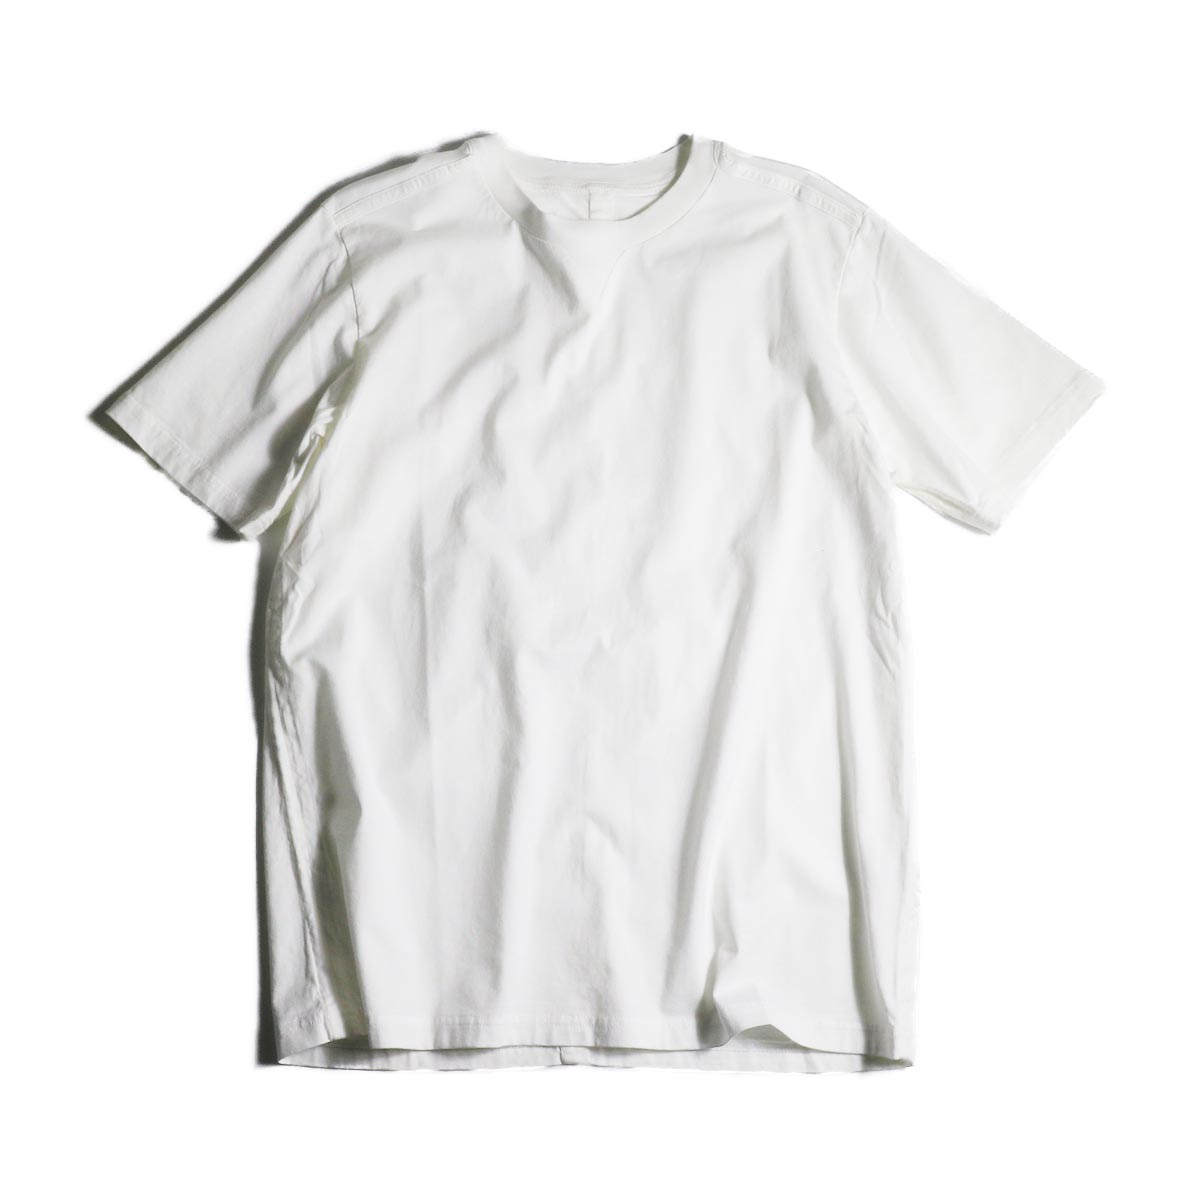 The Soloist / swc.0007a crew neck s/s tee (White)